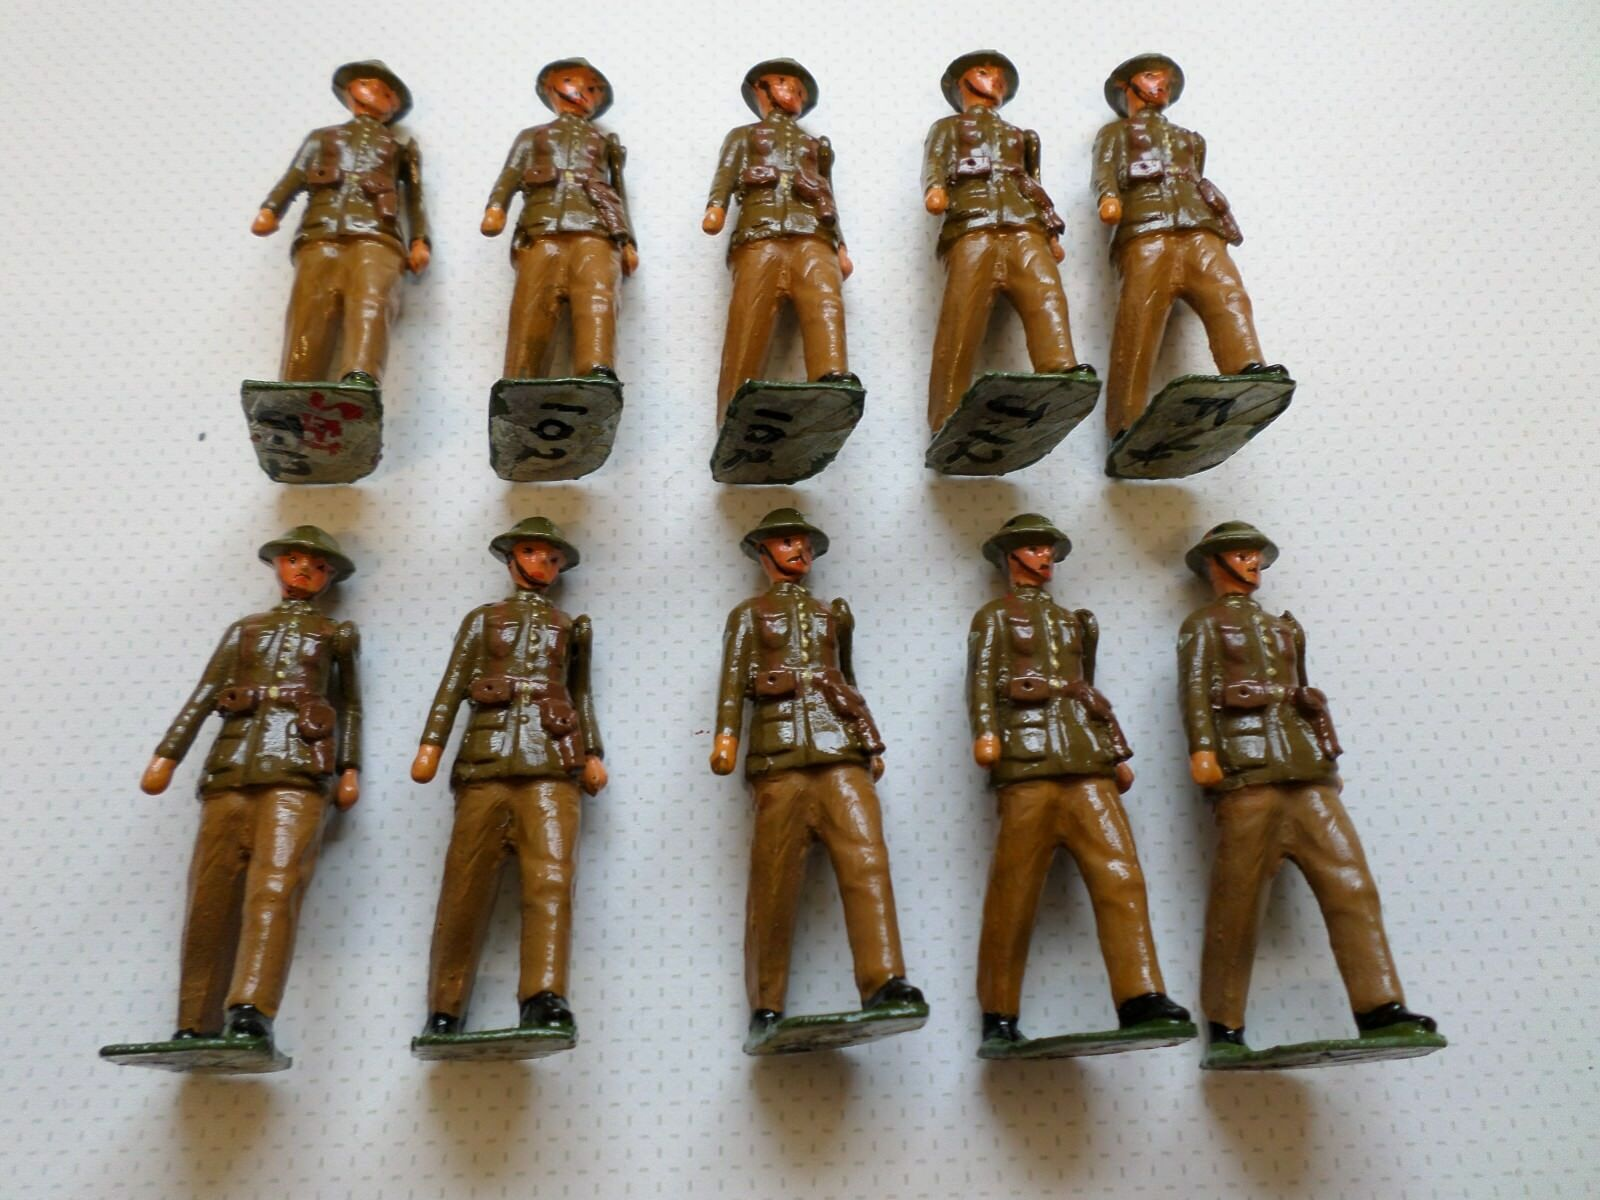 Bastion WW1 British Tank Corps hand painted white metal soldiers